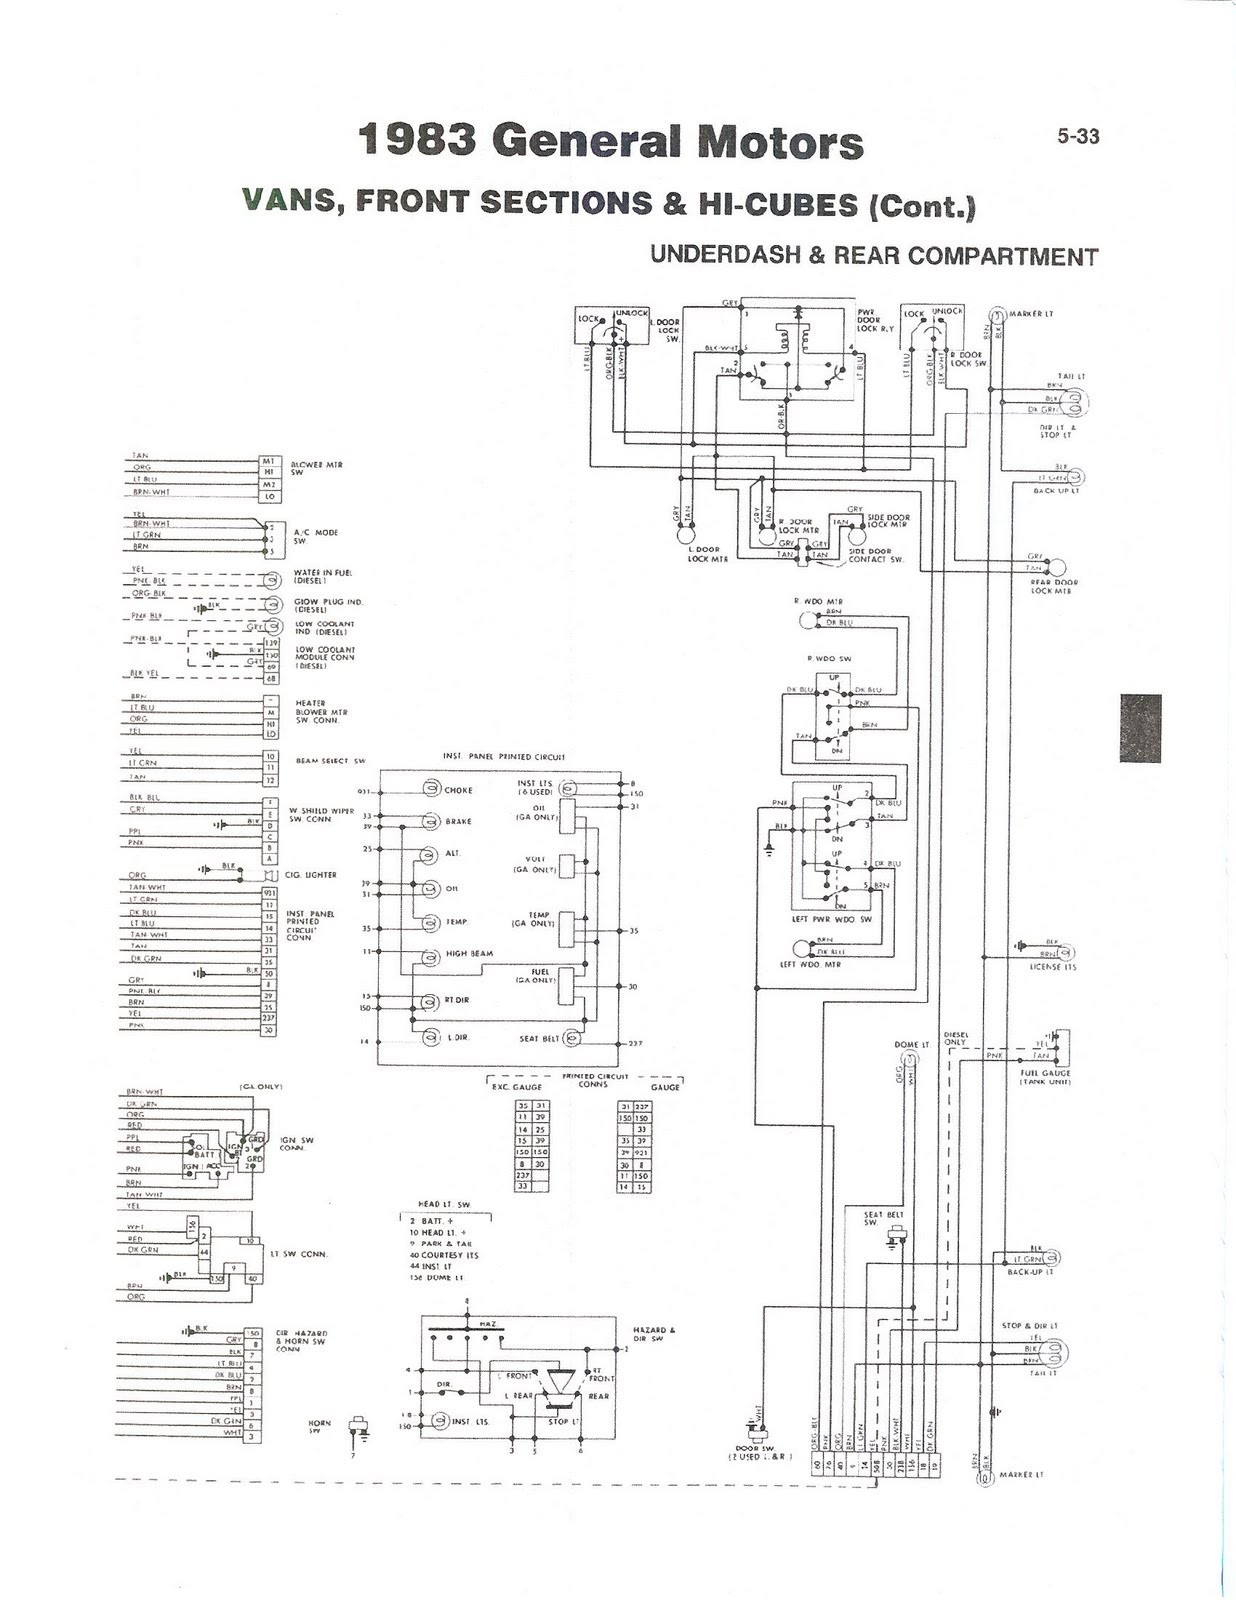 fleetwood providence wiring diagram wiring library Fleetwood Wiring Diagrams battery wiring diagram wiring diagram image 1992 fleetwood motorhome wiring diagram 1990 fleetwood